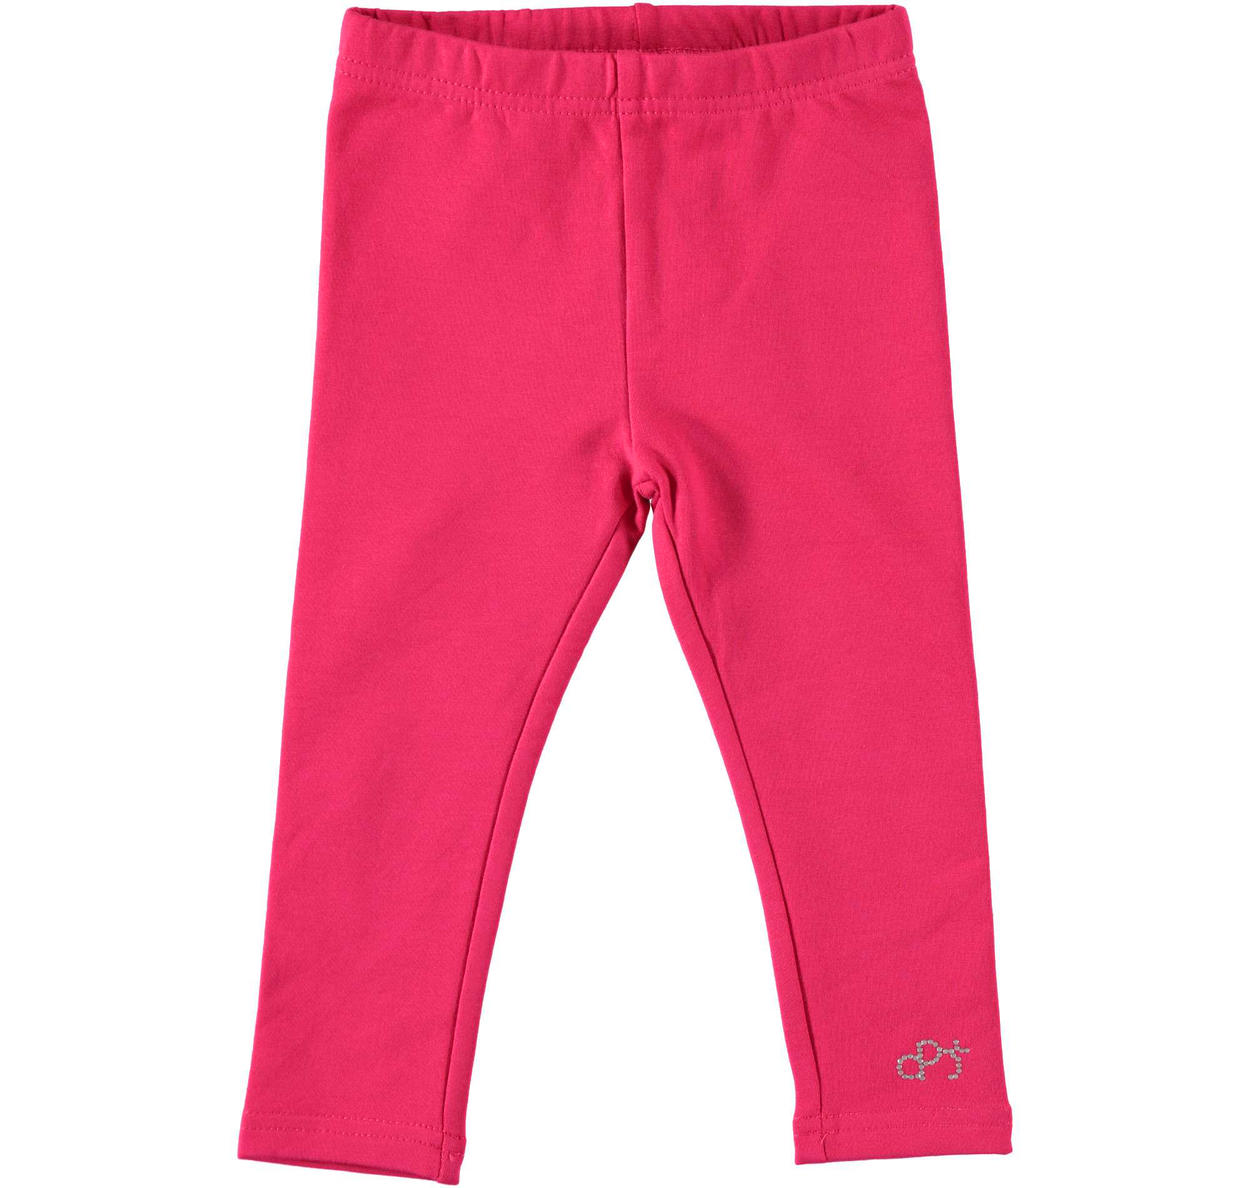 Leggings in felpa stretch con logo per bambina da 6 a 30 mesi Dodipetto